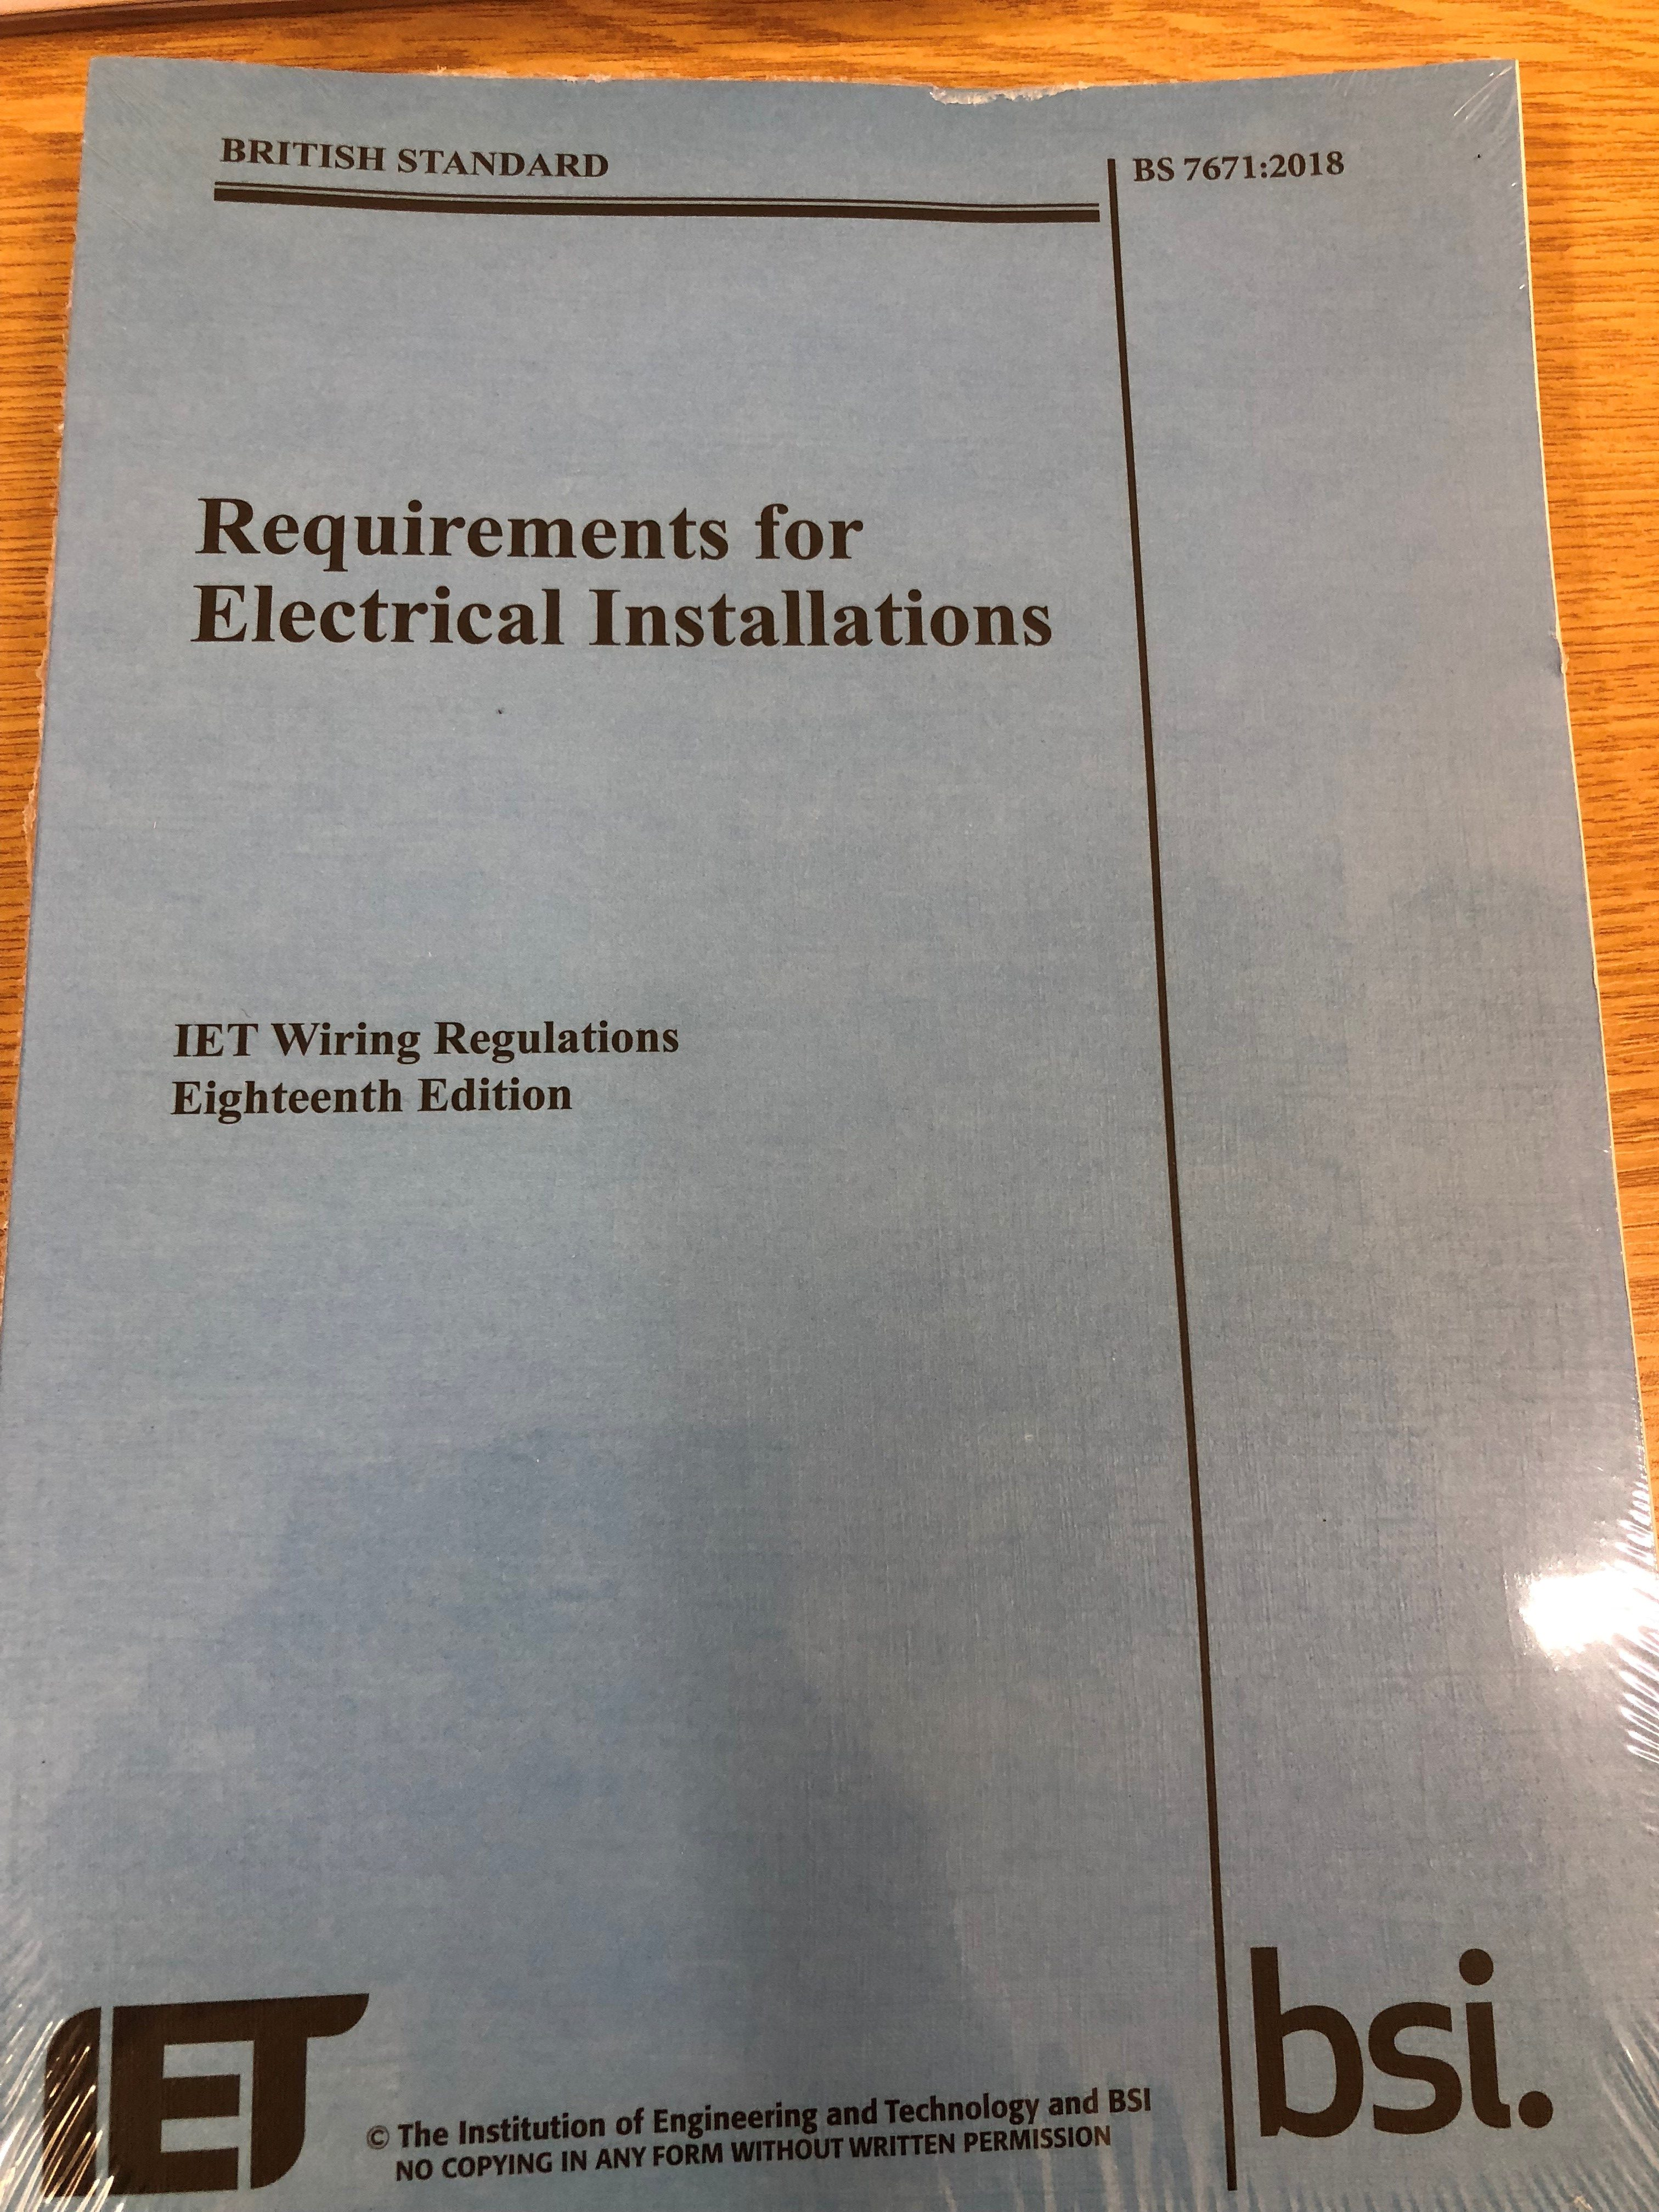 18th edition wiring regulations book proactive technical training rh proactivetechnicaltraining co uk Electrical Wiring Diagrams for Electric Heat Electrical Wiring for School